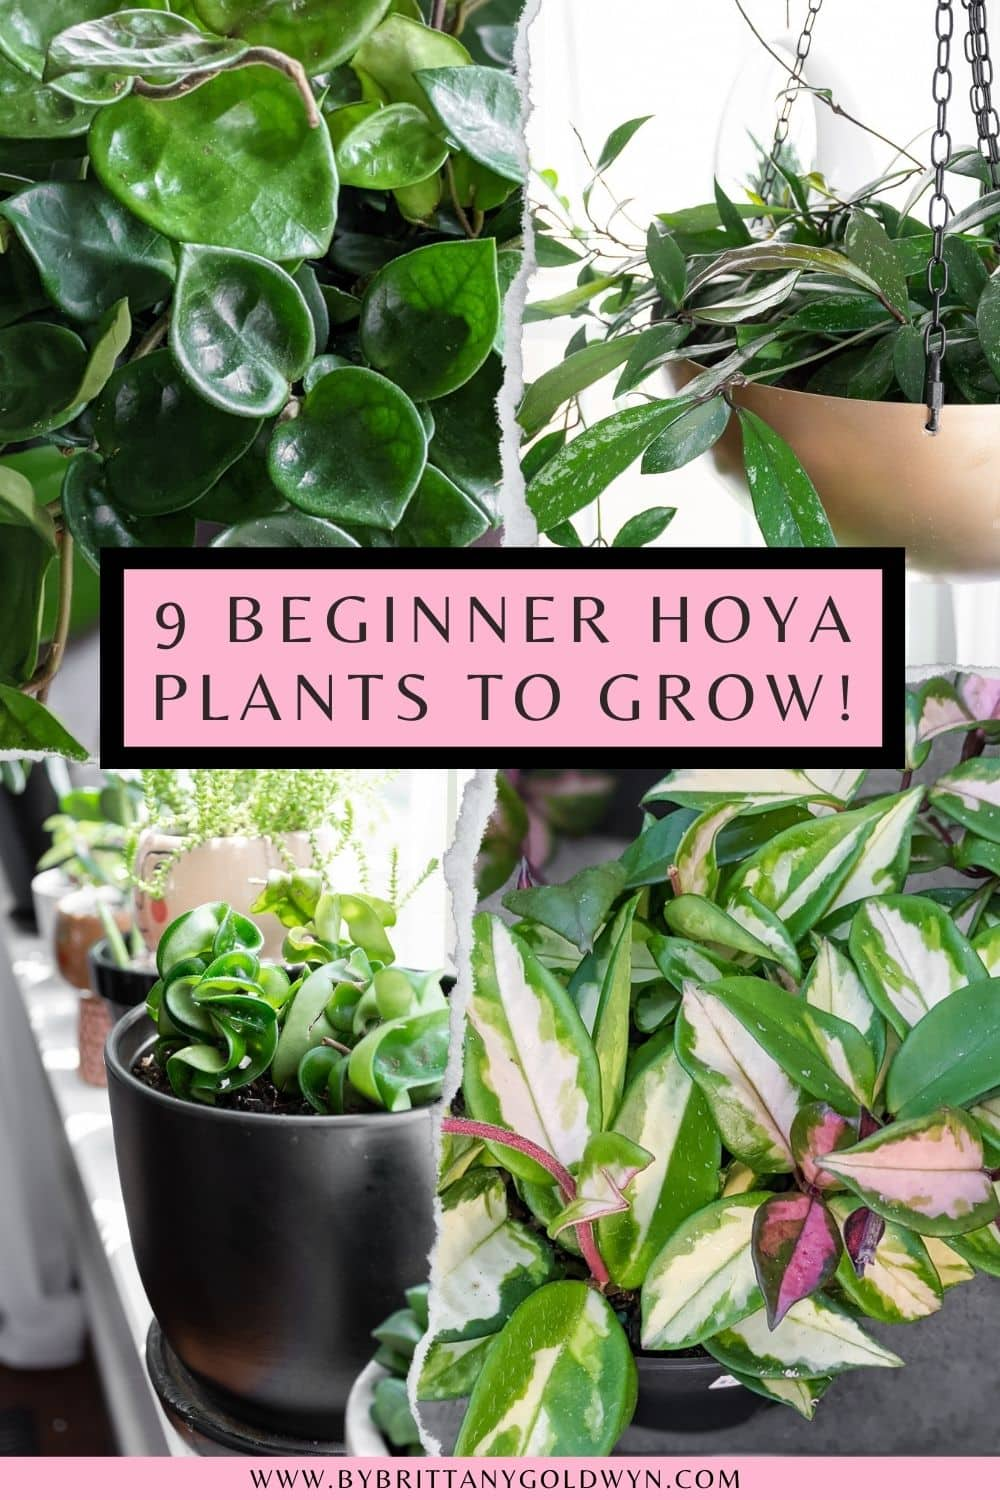 pinnable graphic about 9 hoya plant varieties to try including photos and text overlay